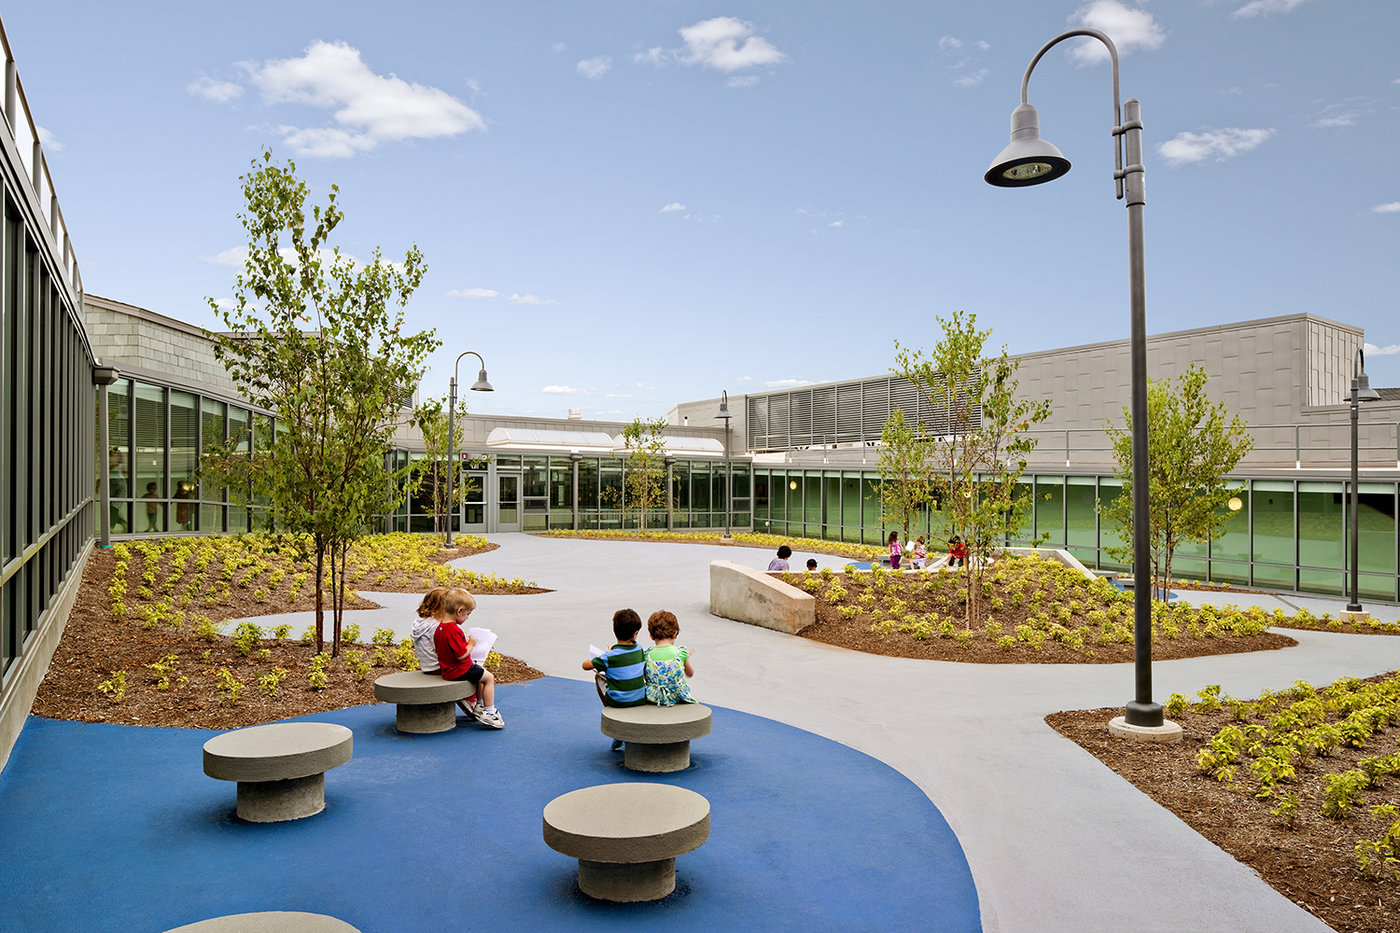 5 tskp bloomfield wintonbury early childhood magnet school exterior central courtyard 1400 0x0x1500x1000 q85